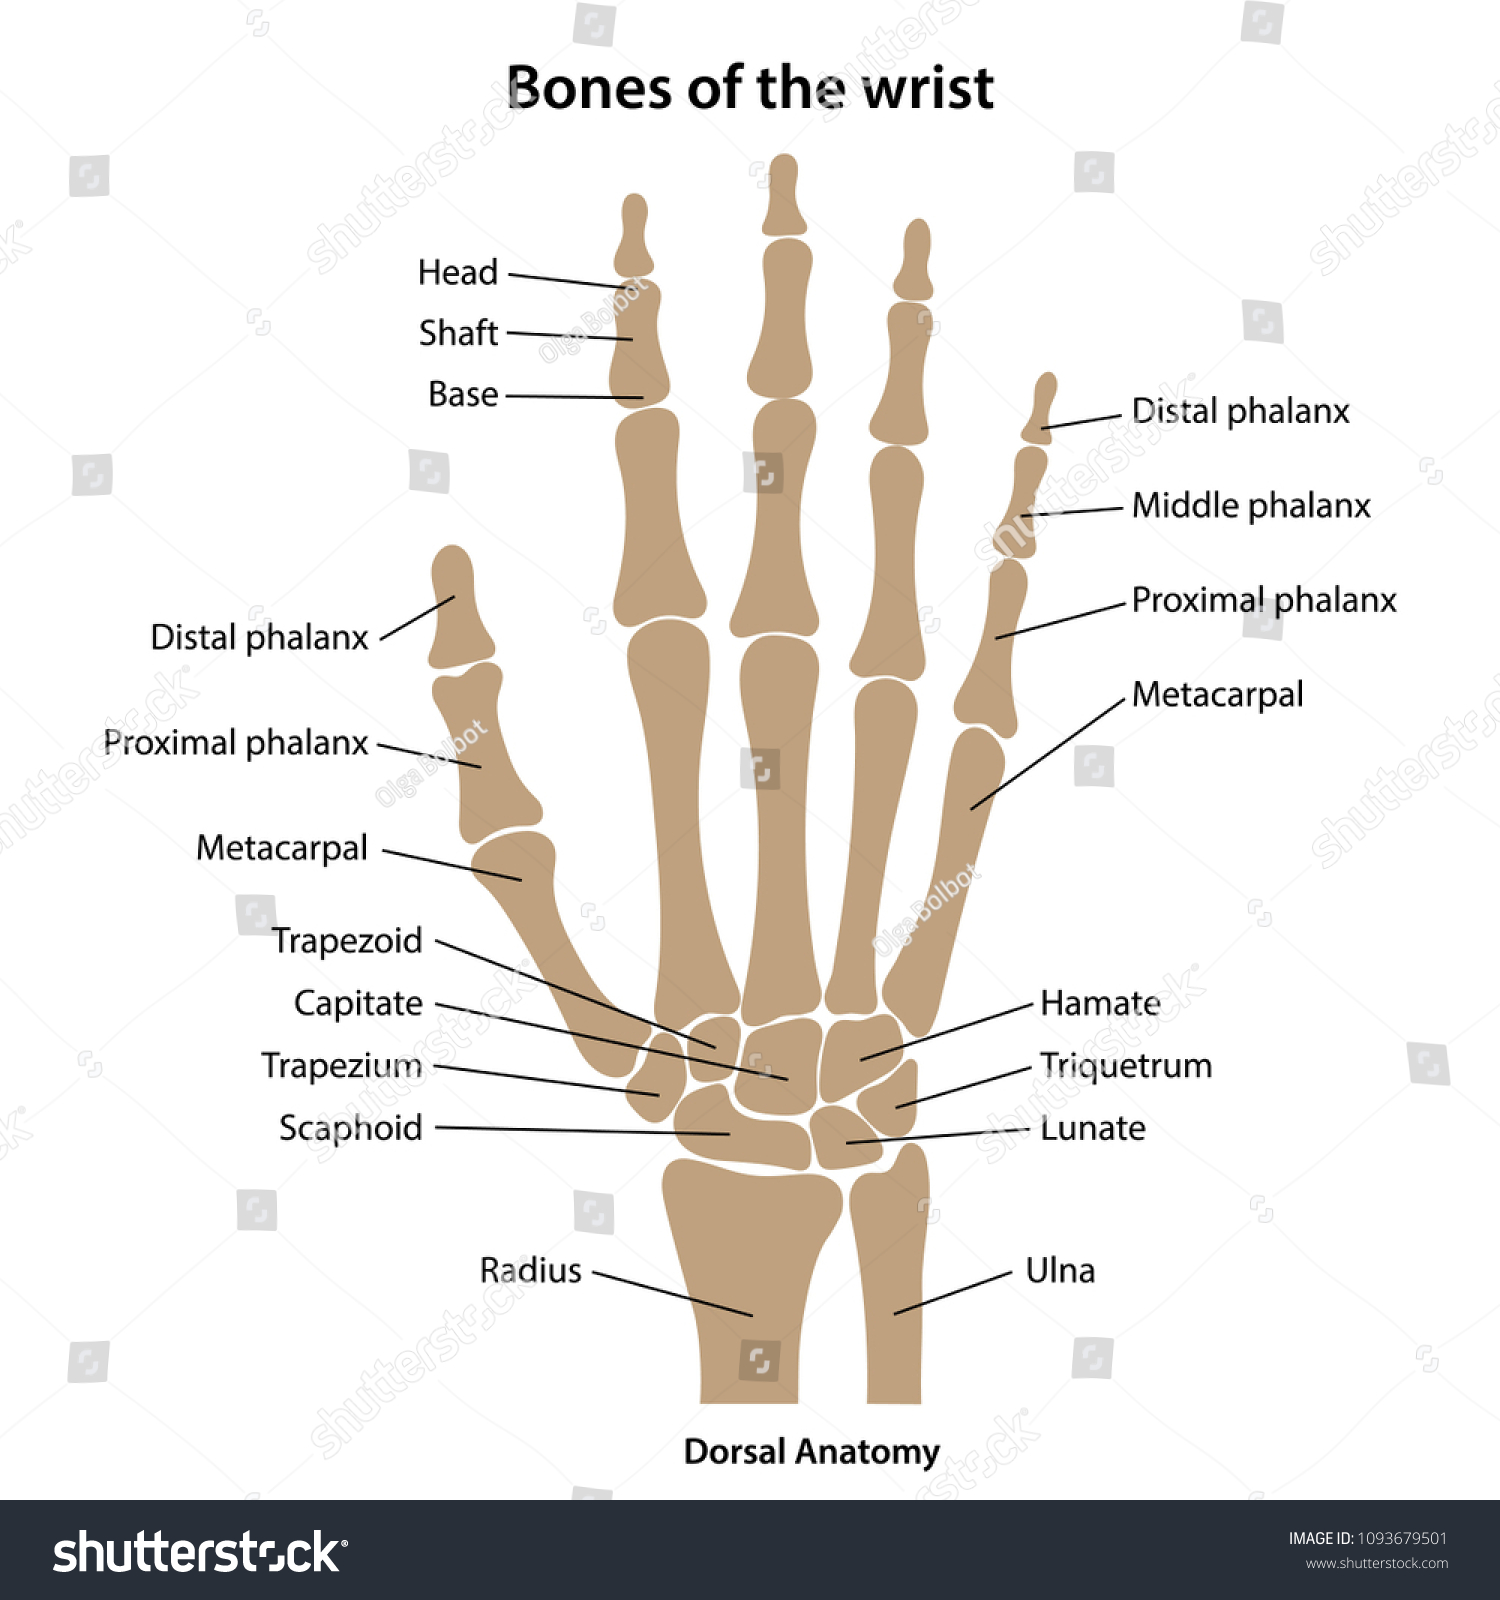 Bones Wrist Main Parts Labeled Vector Stock Vector Royalty Free